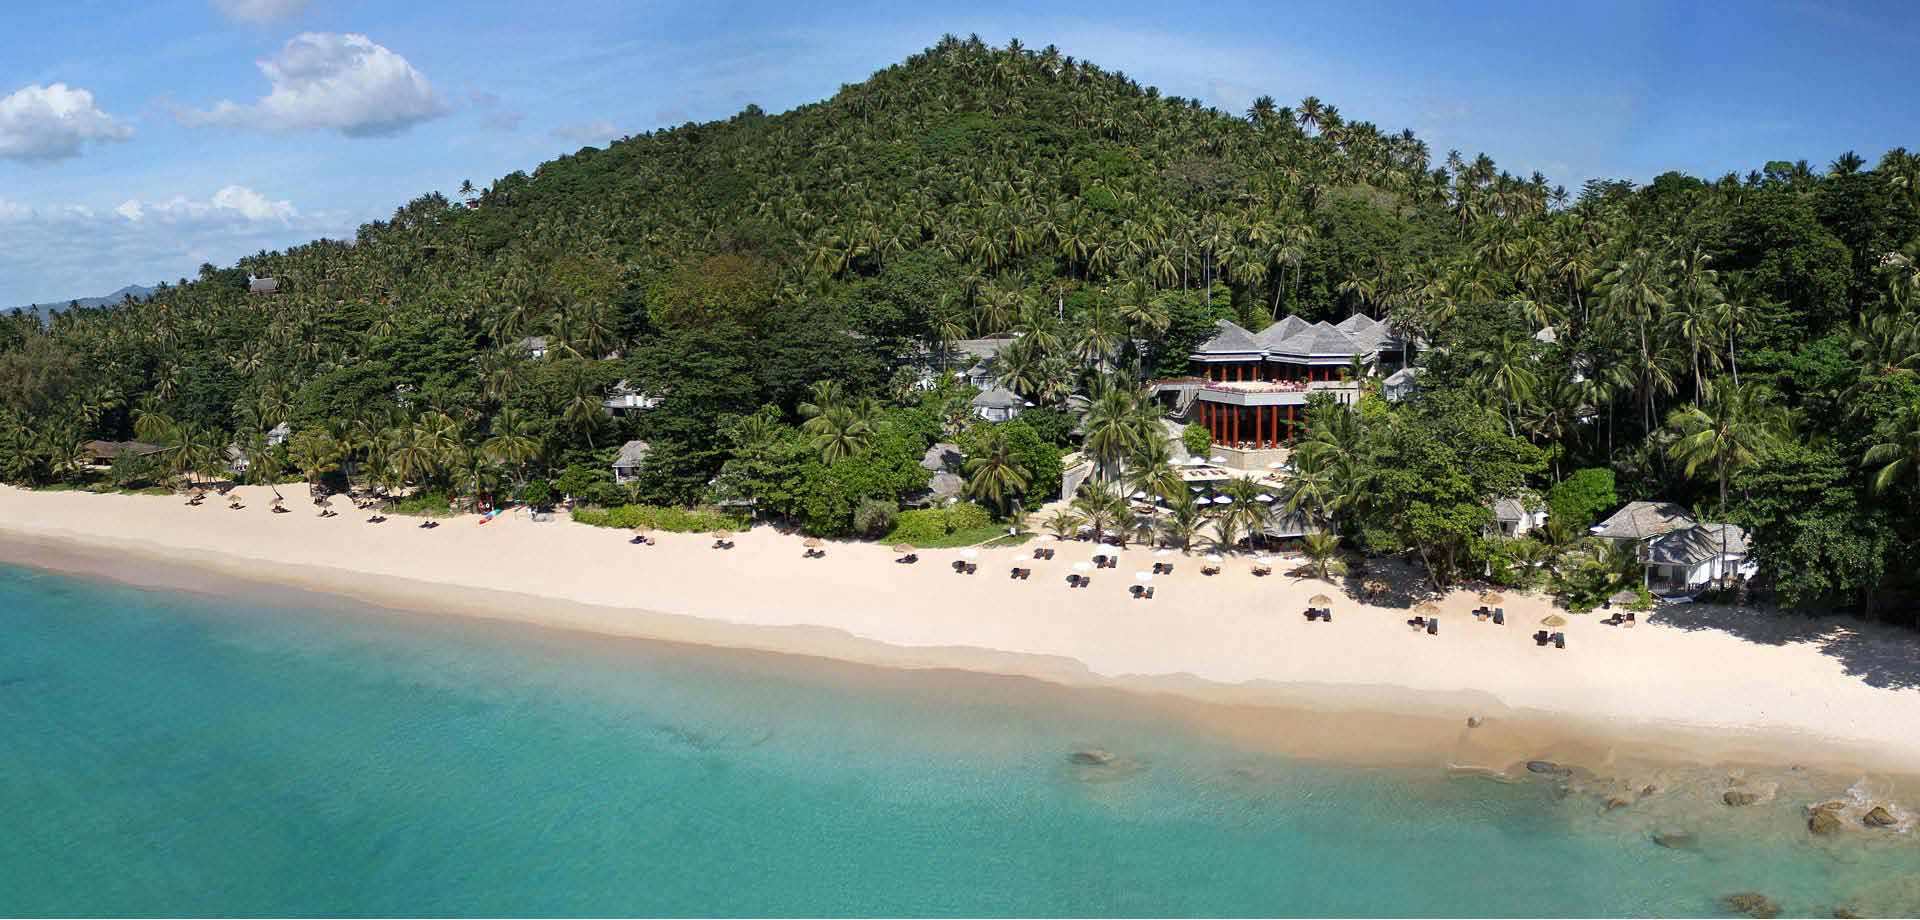 Weddings At Surin Phuket Surin Phuket Weddings From Perfect Weddings Abroad